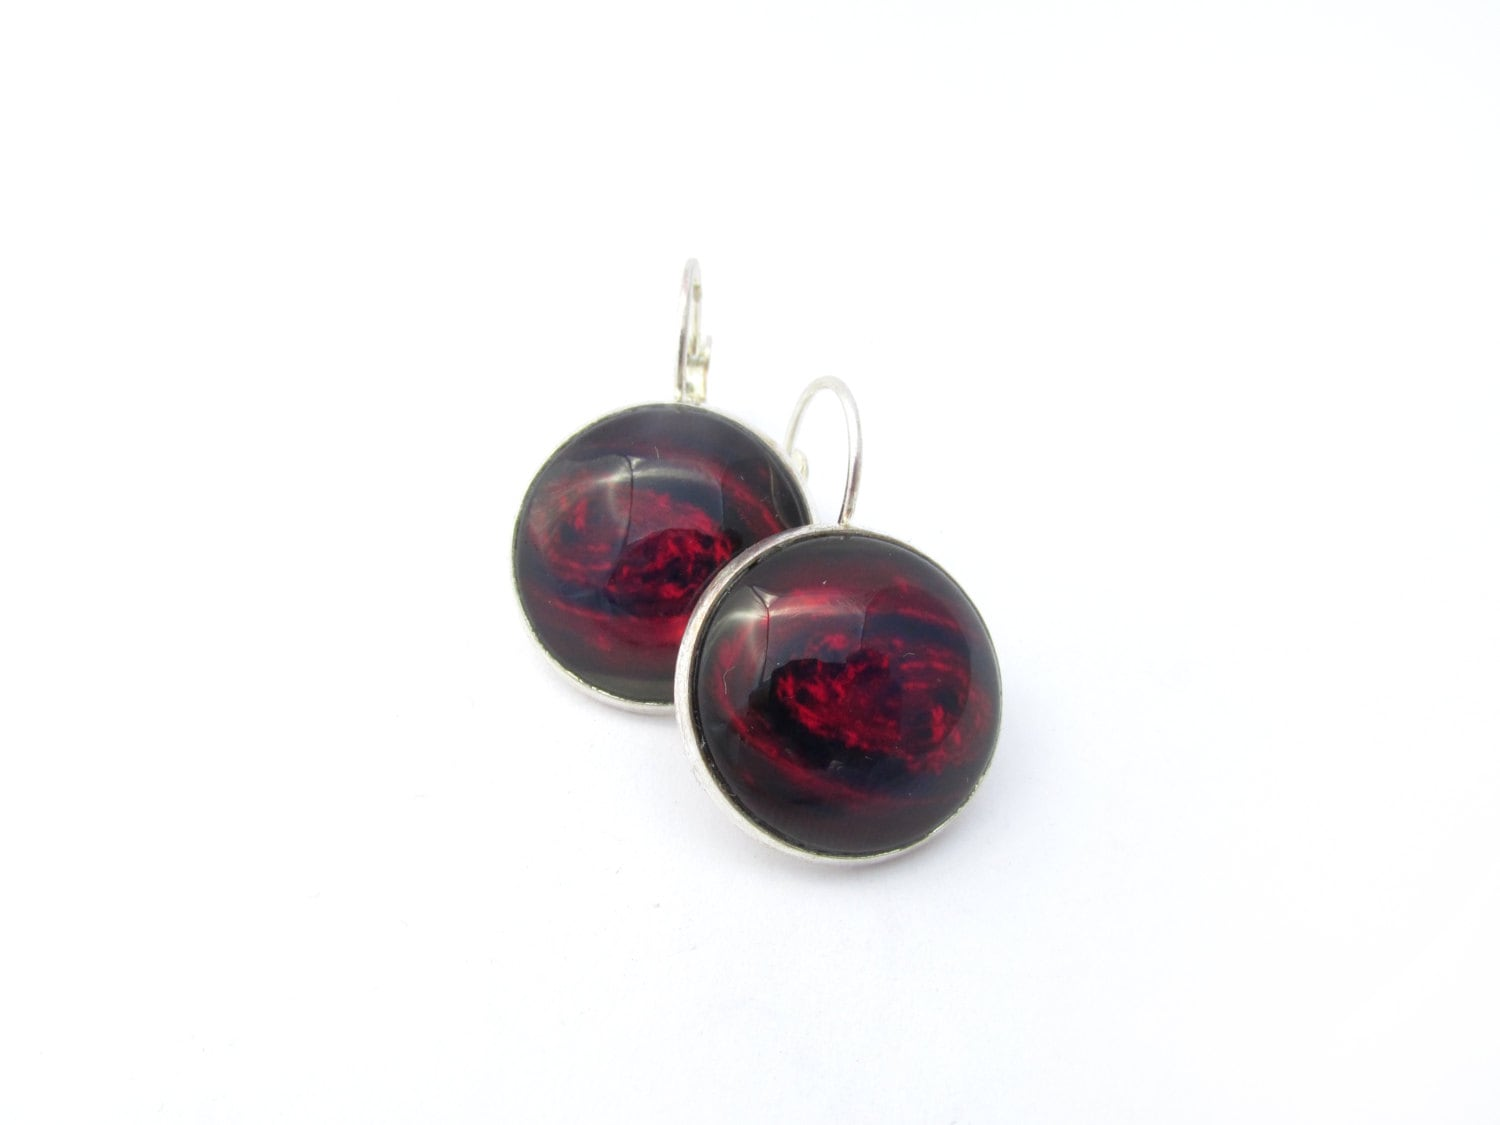 planet saturn earring - photo #31